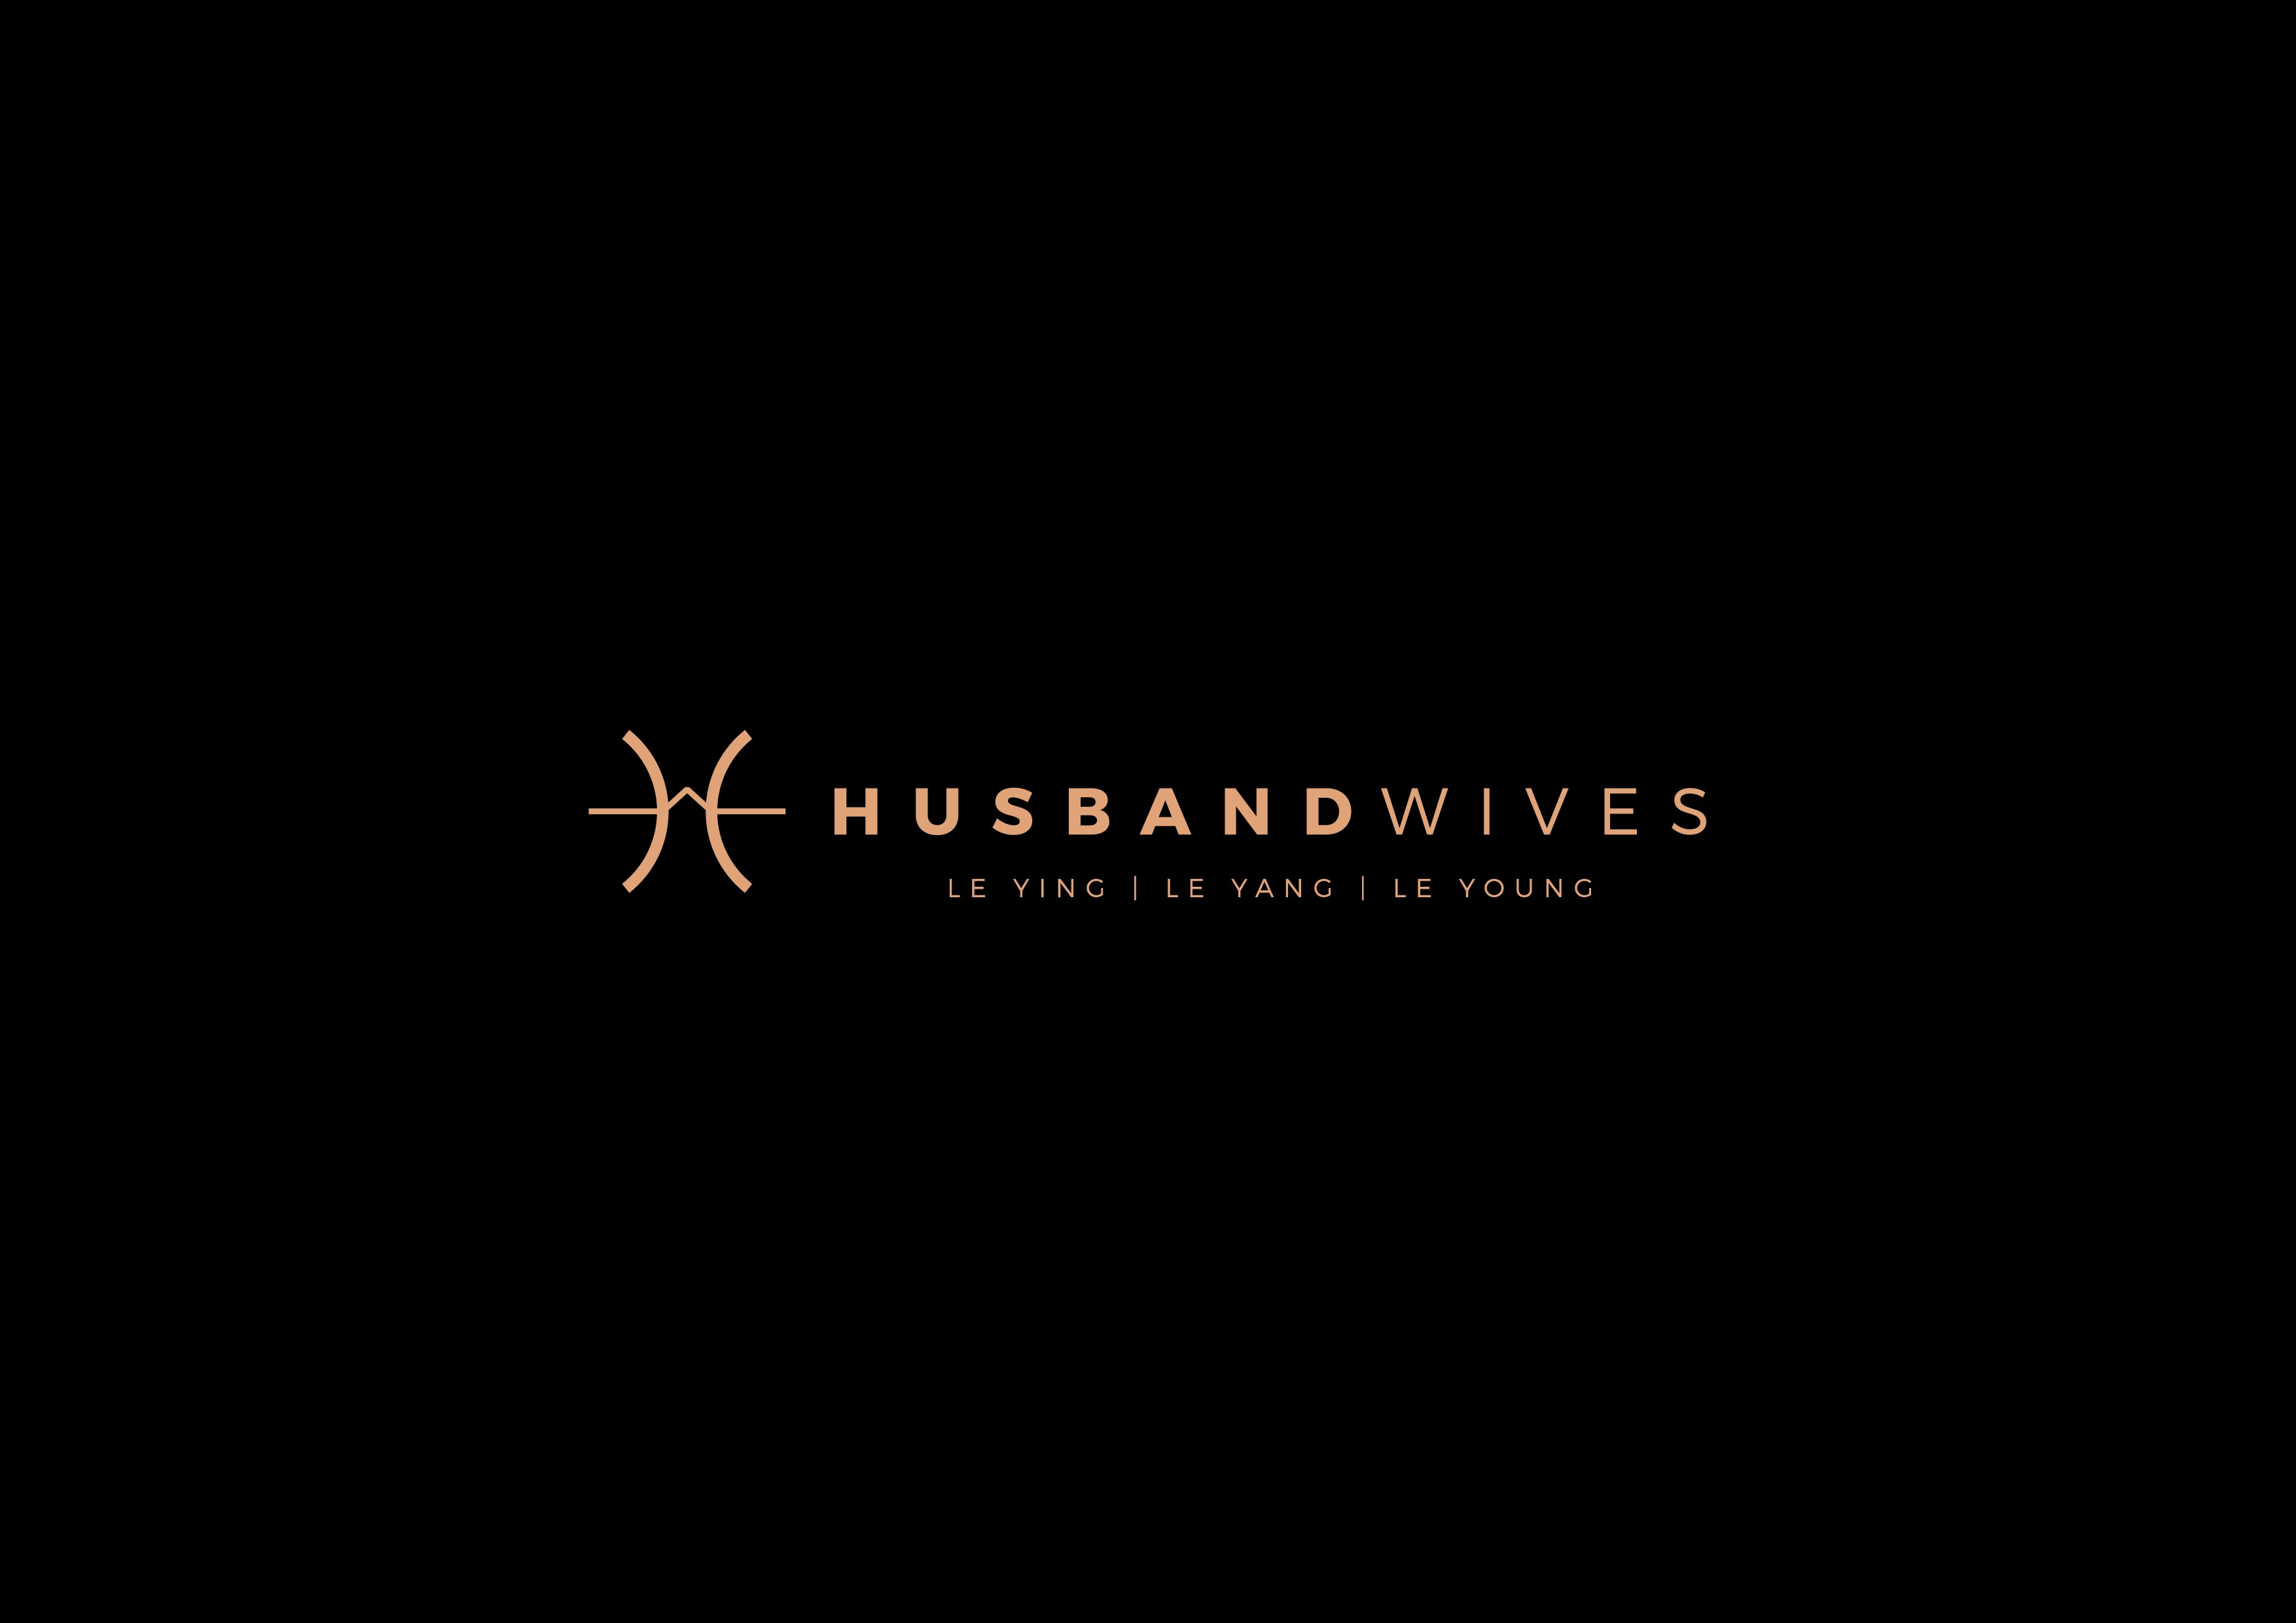 HUSBANDWIVES logo